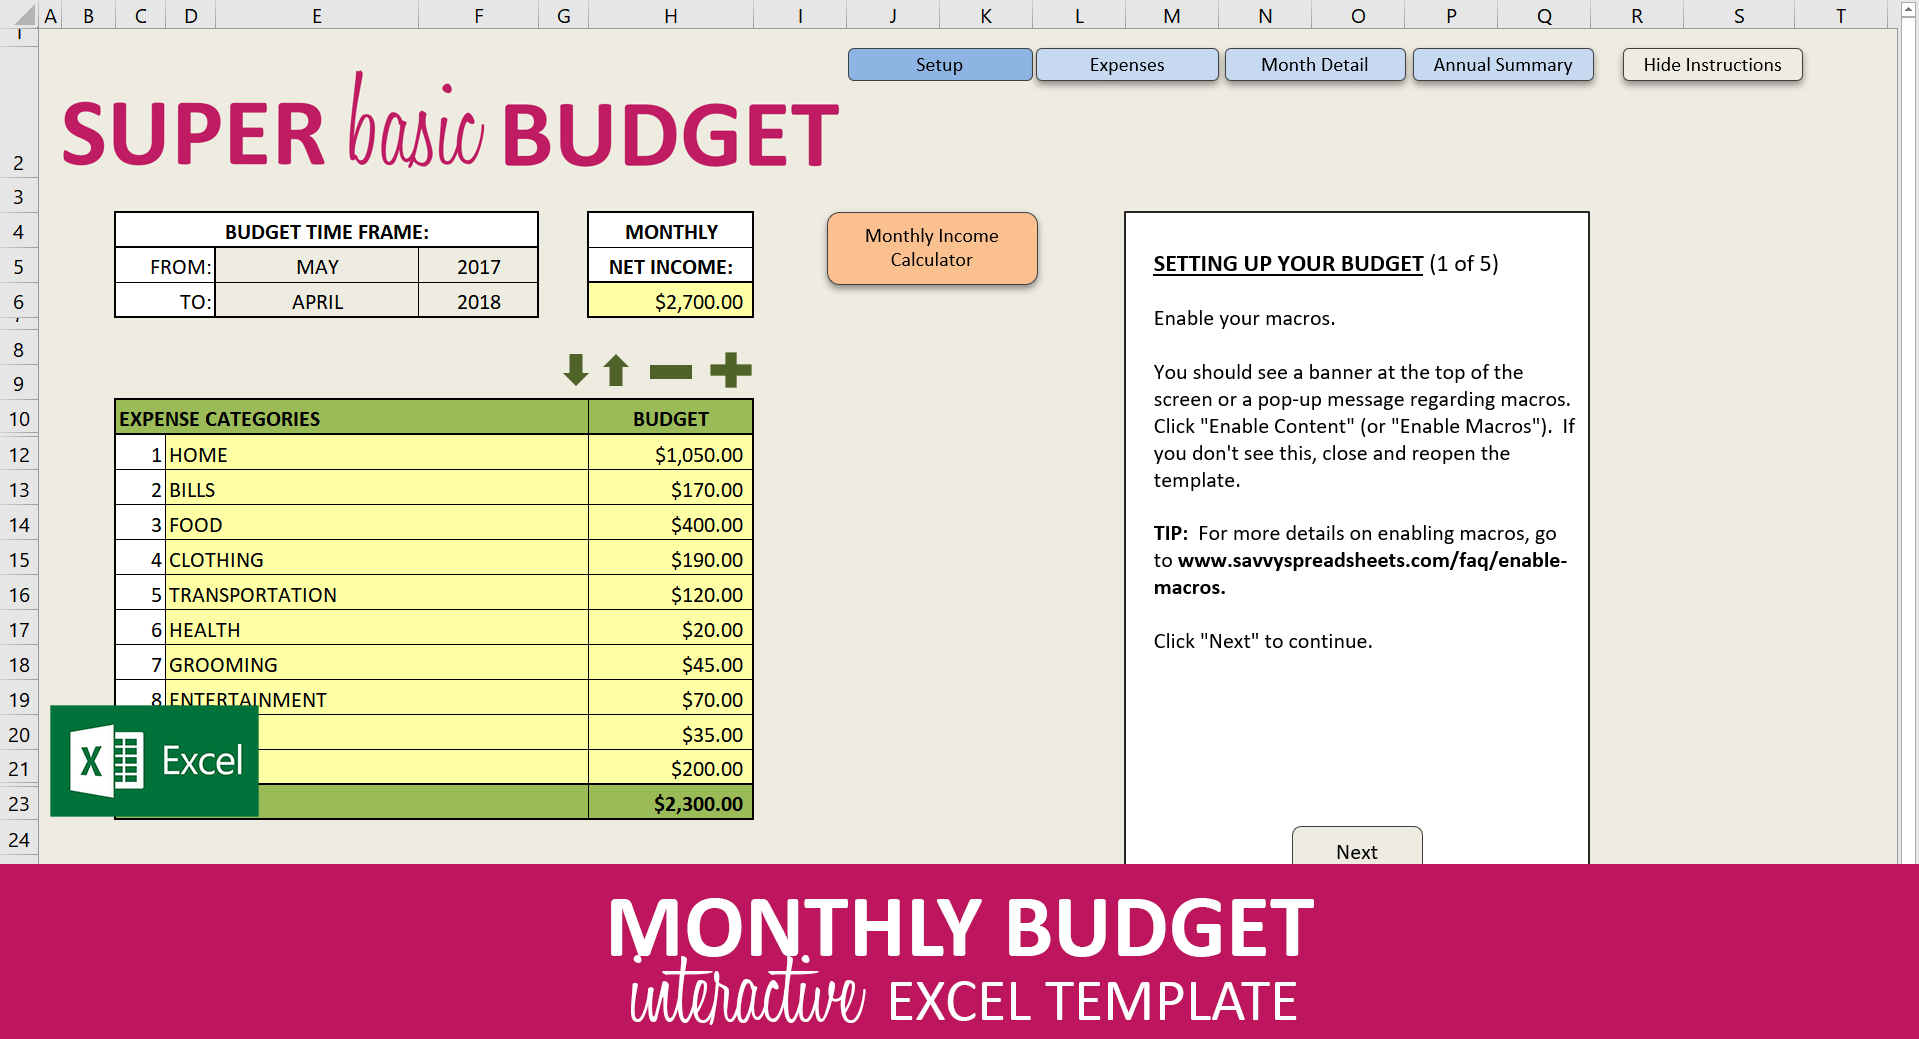 Basic Budget Excel Template from cdn.shopify.com